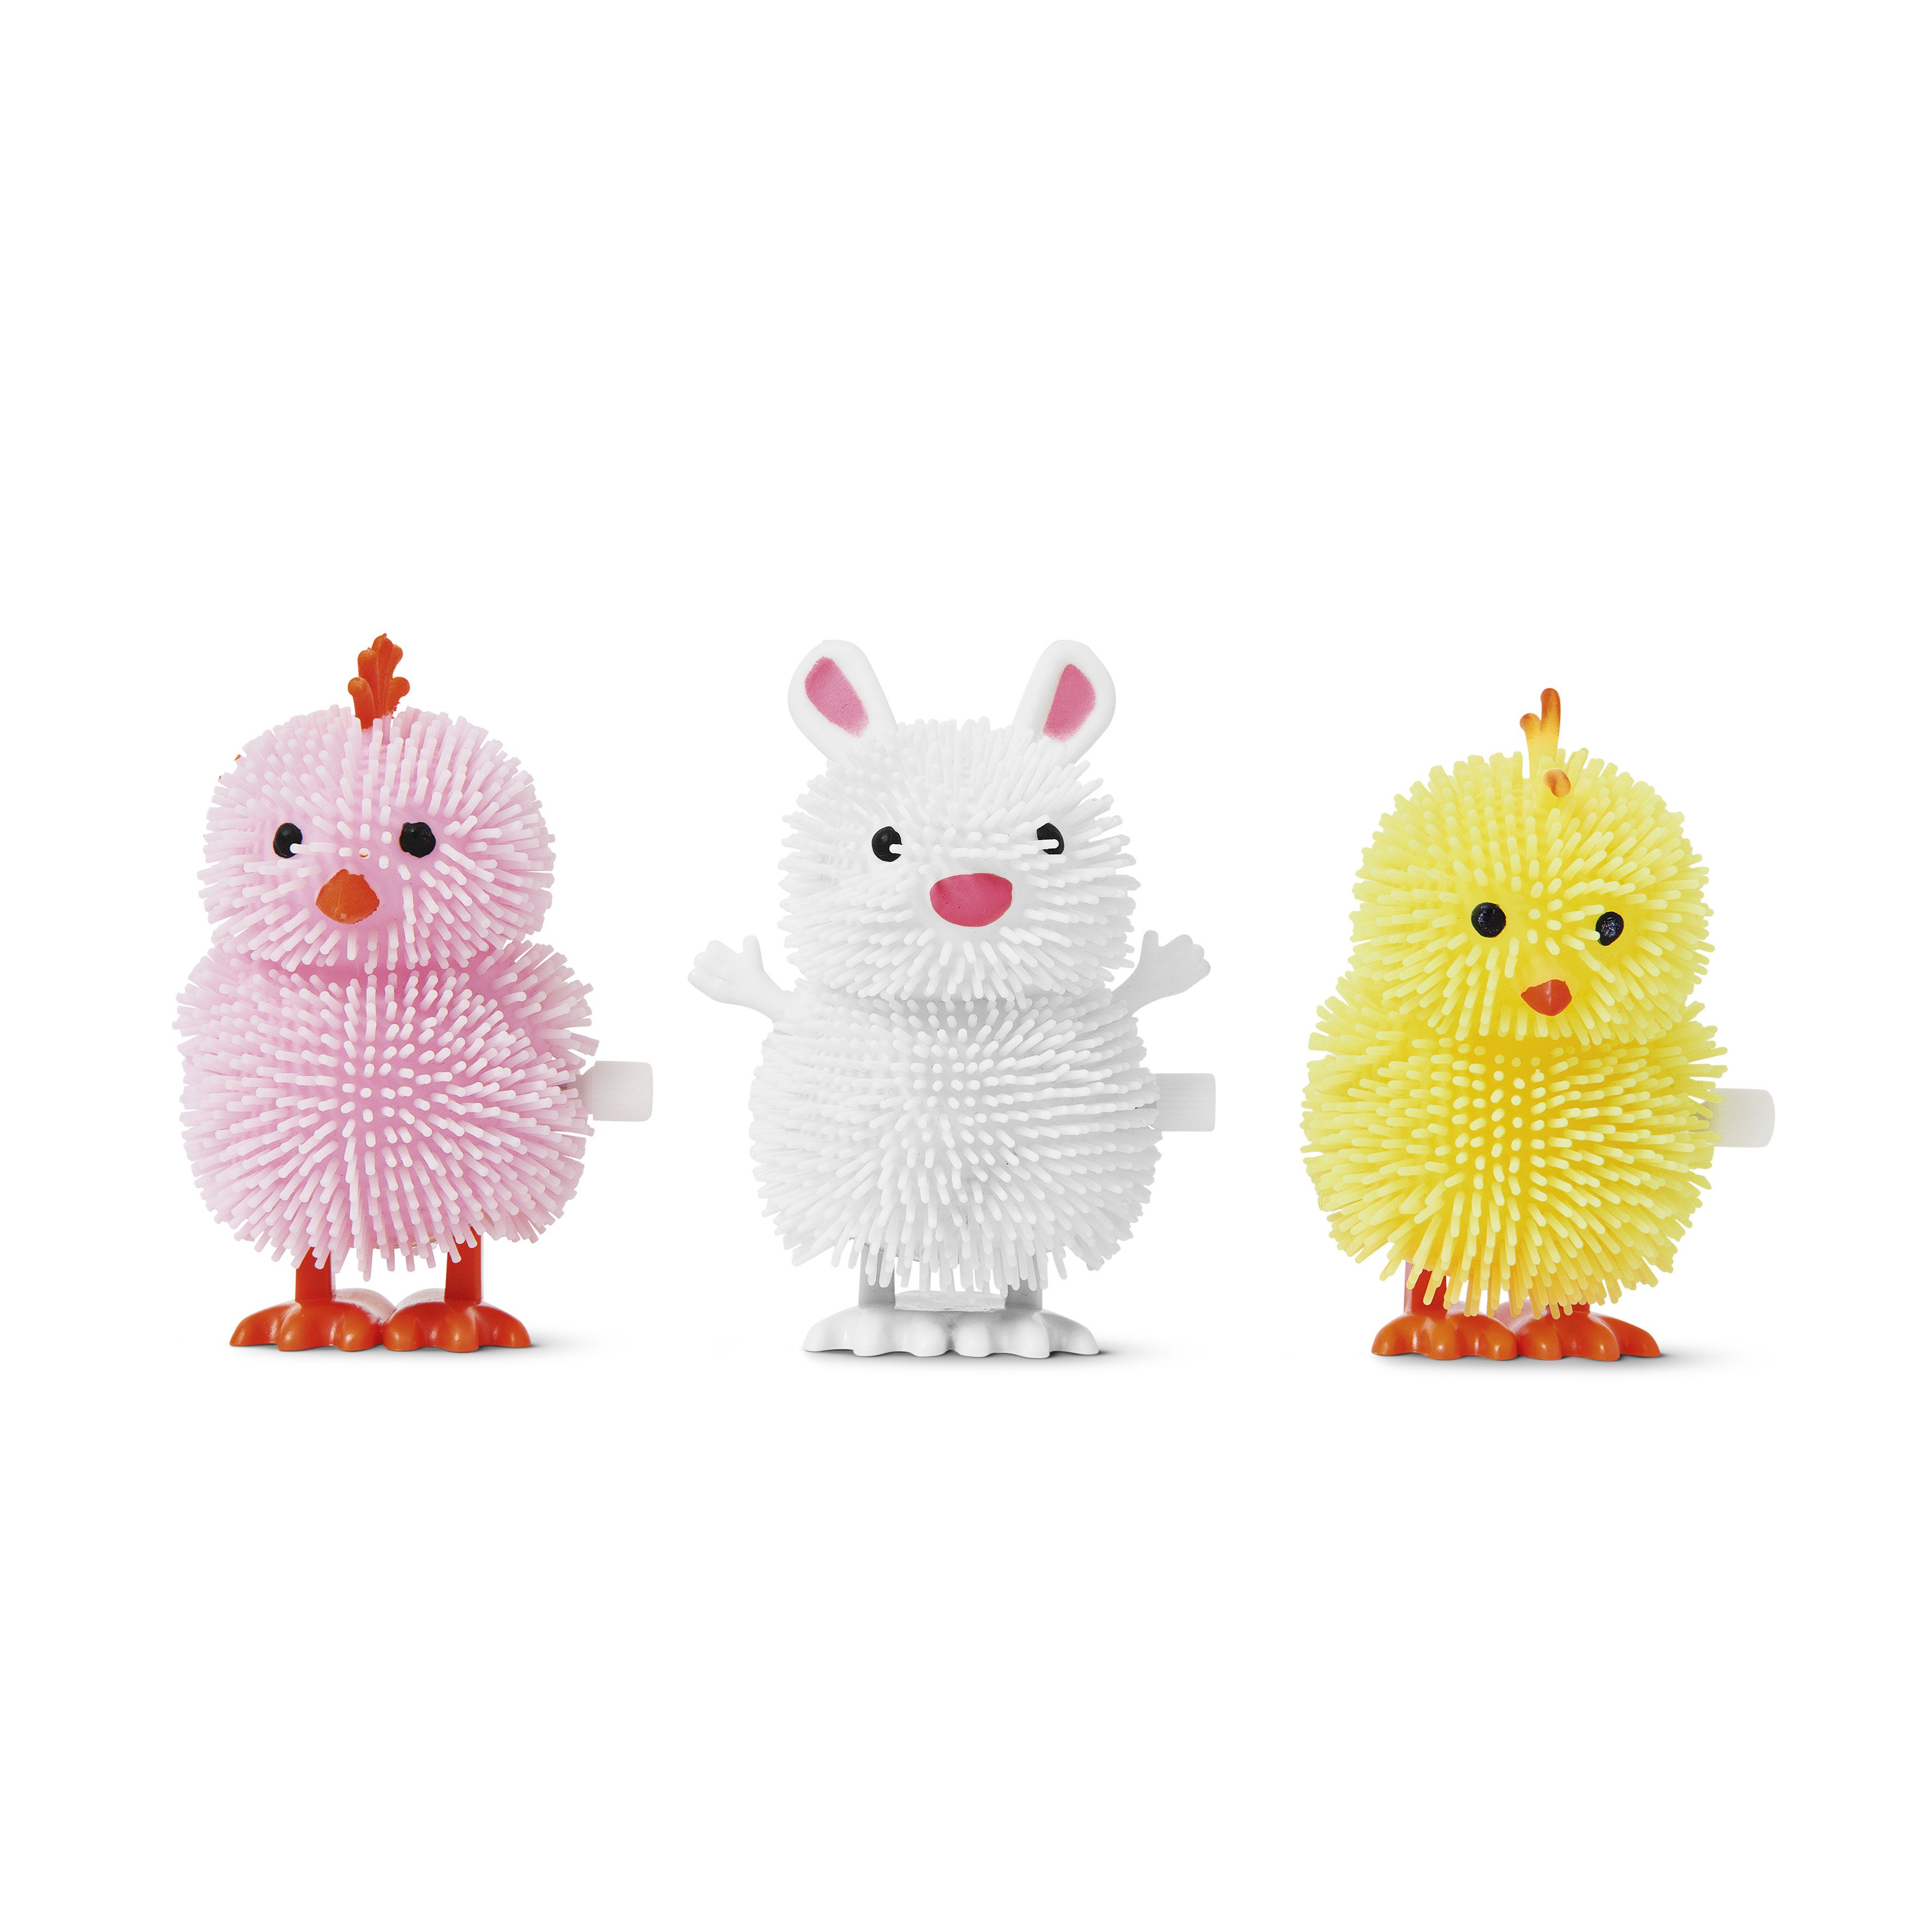 Marvelous Easter, Chicks And Bunny, Tiger, Finnish Store, March 2016